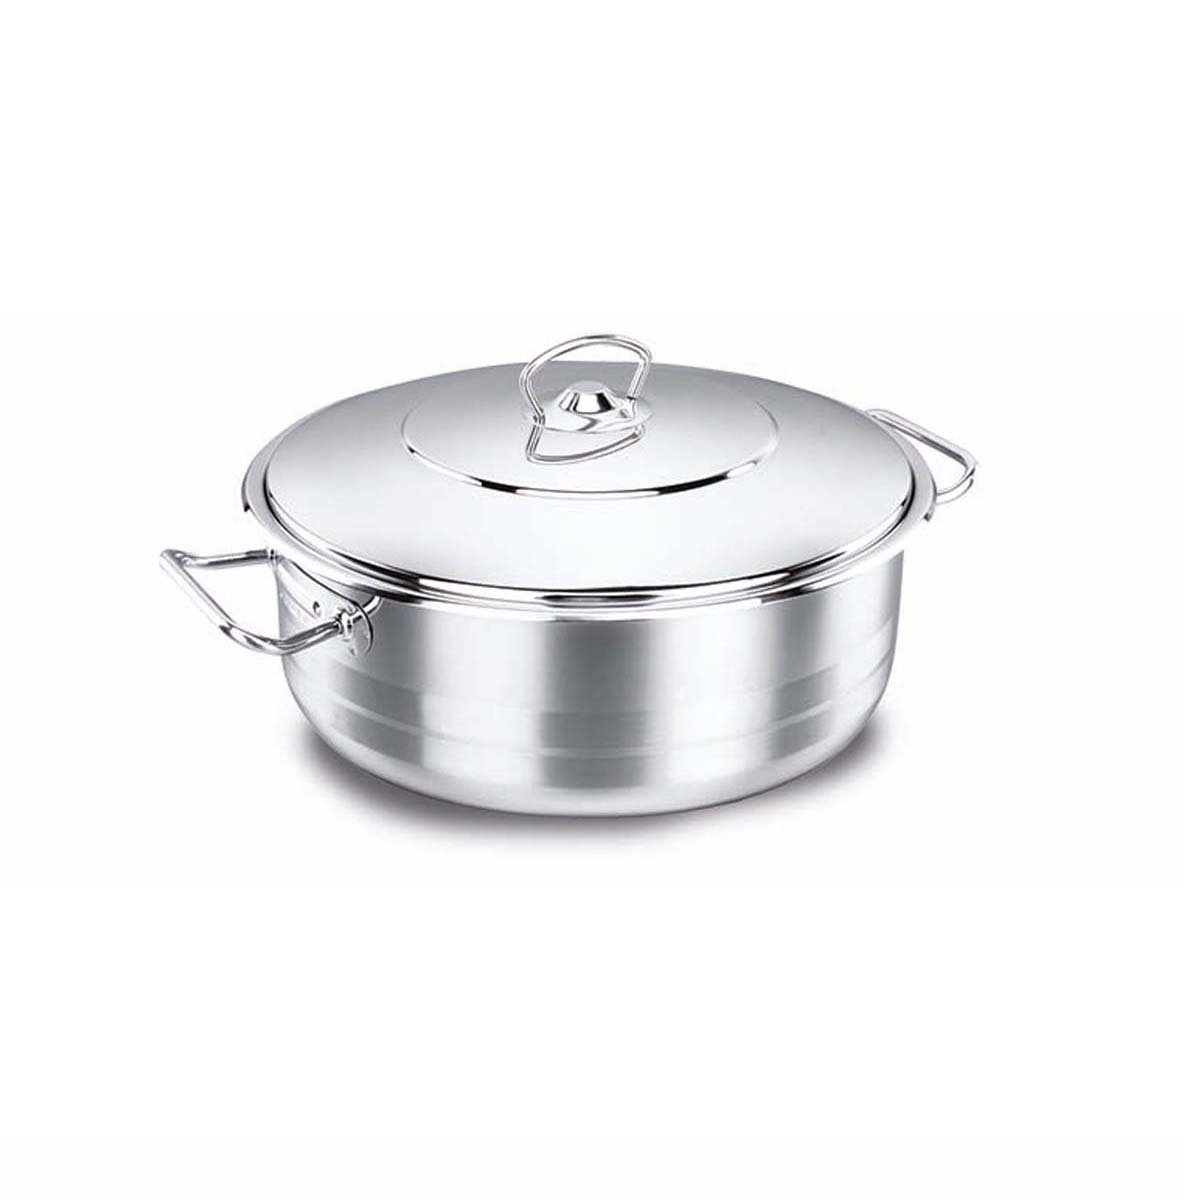 Korkmaz Astra Stainless Steel Capsulated Low Casserole With Stainless Steel Lids, Astra 24 X 8 - 3.6 Litre